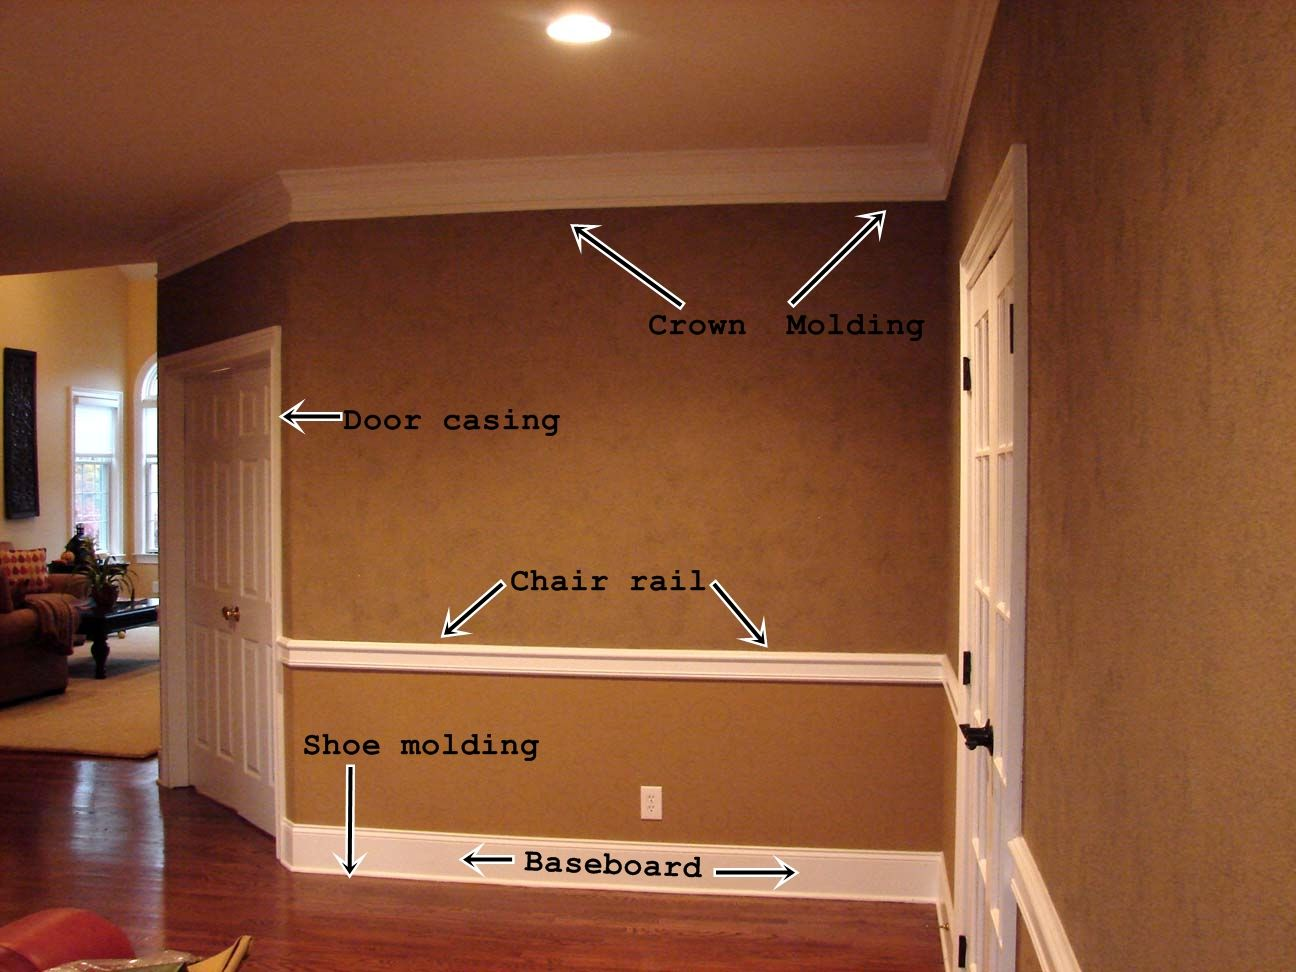 Crown molding and trim ideas types of moldings types of molding types of molding houston interior moldings and trim installation amipublicfo Image collections